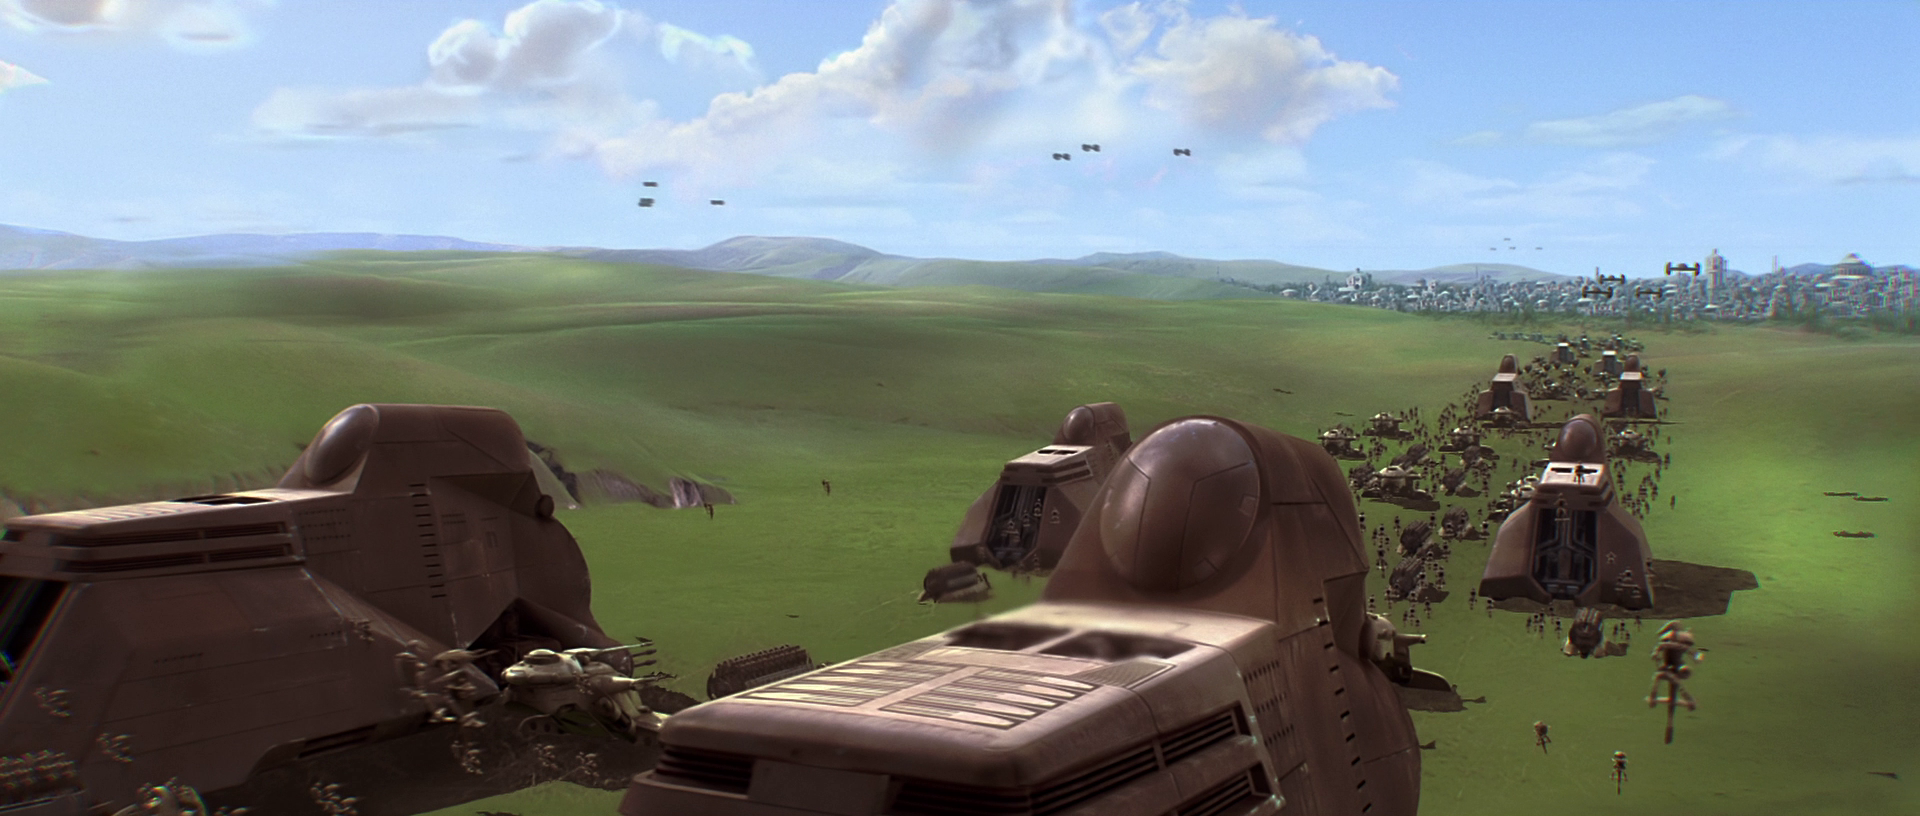 Invasion of Naboo